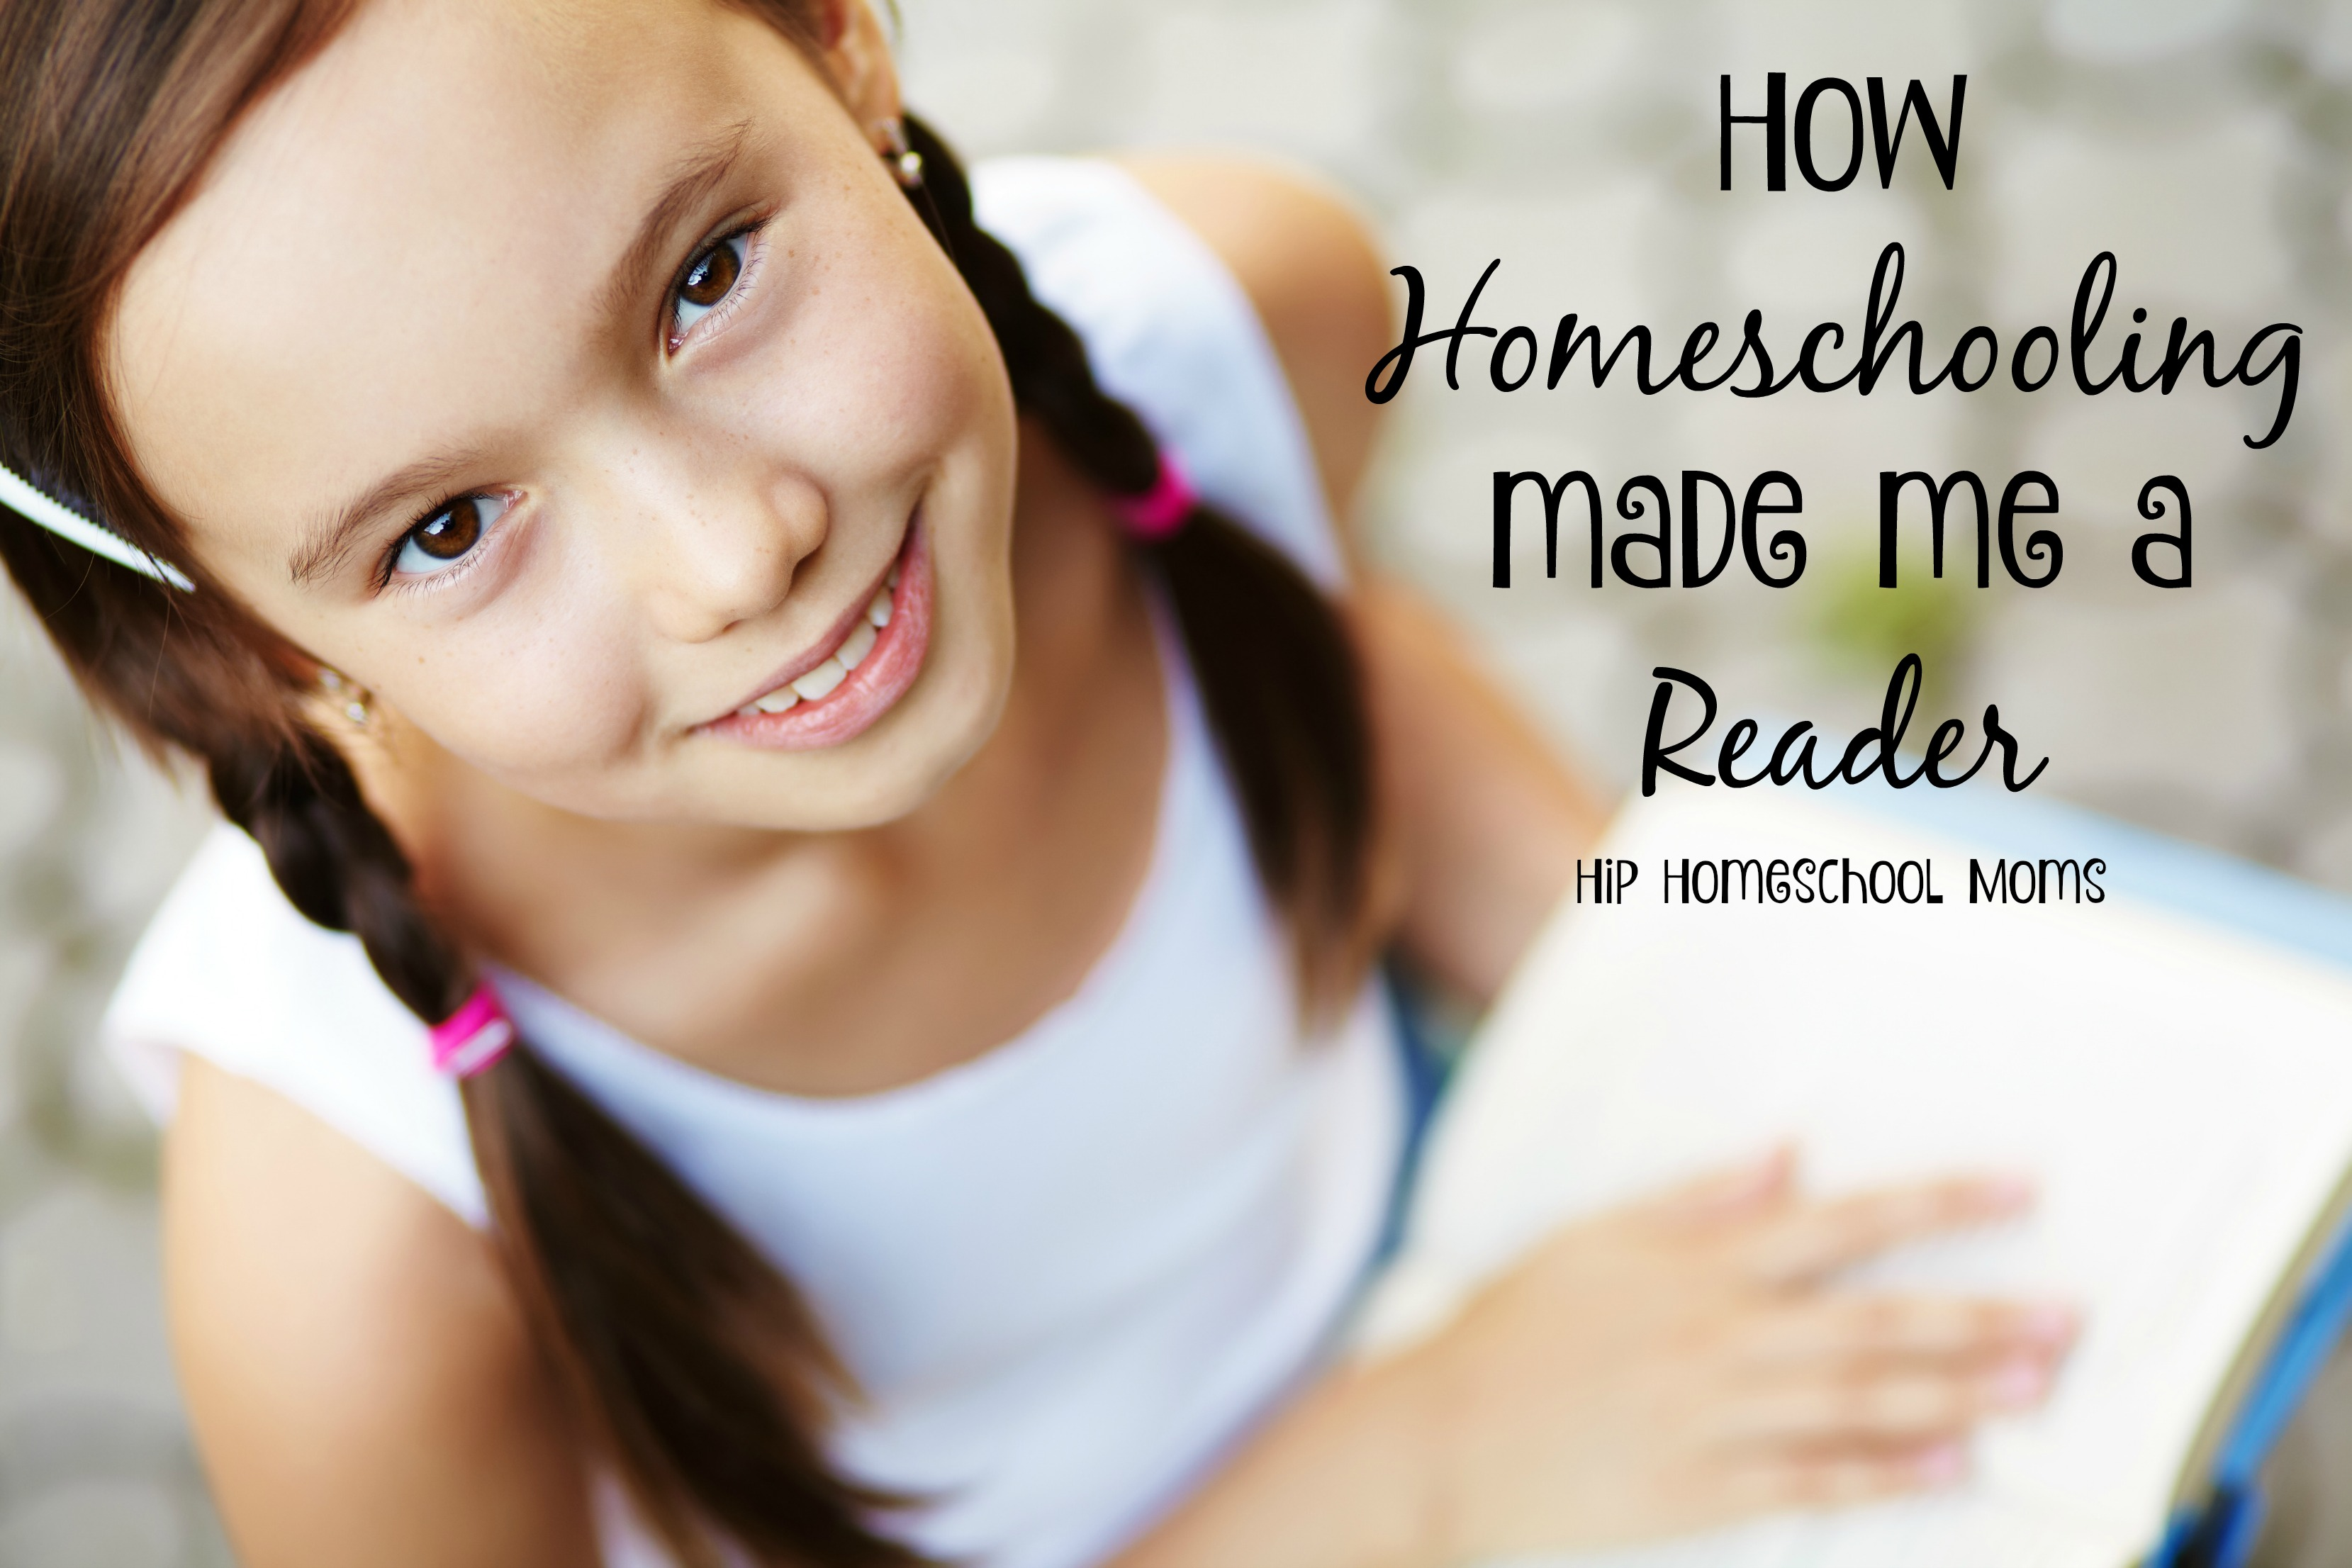 How Homeschooling Made Me a Reader